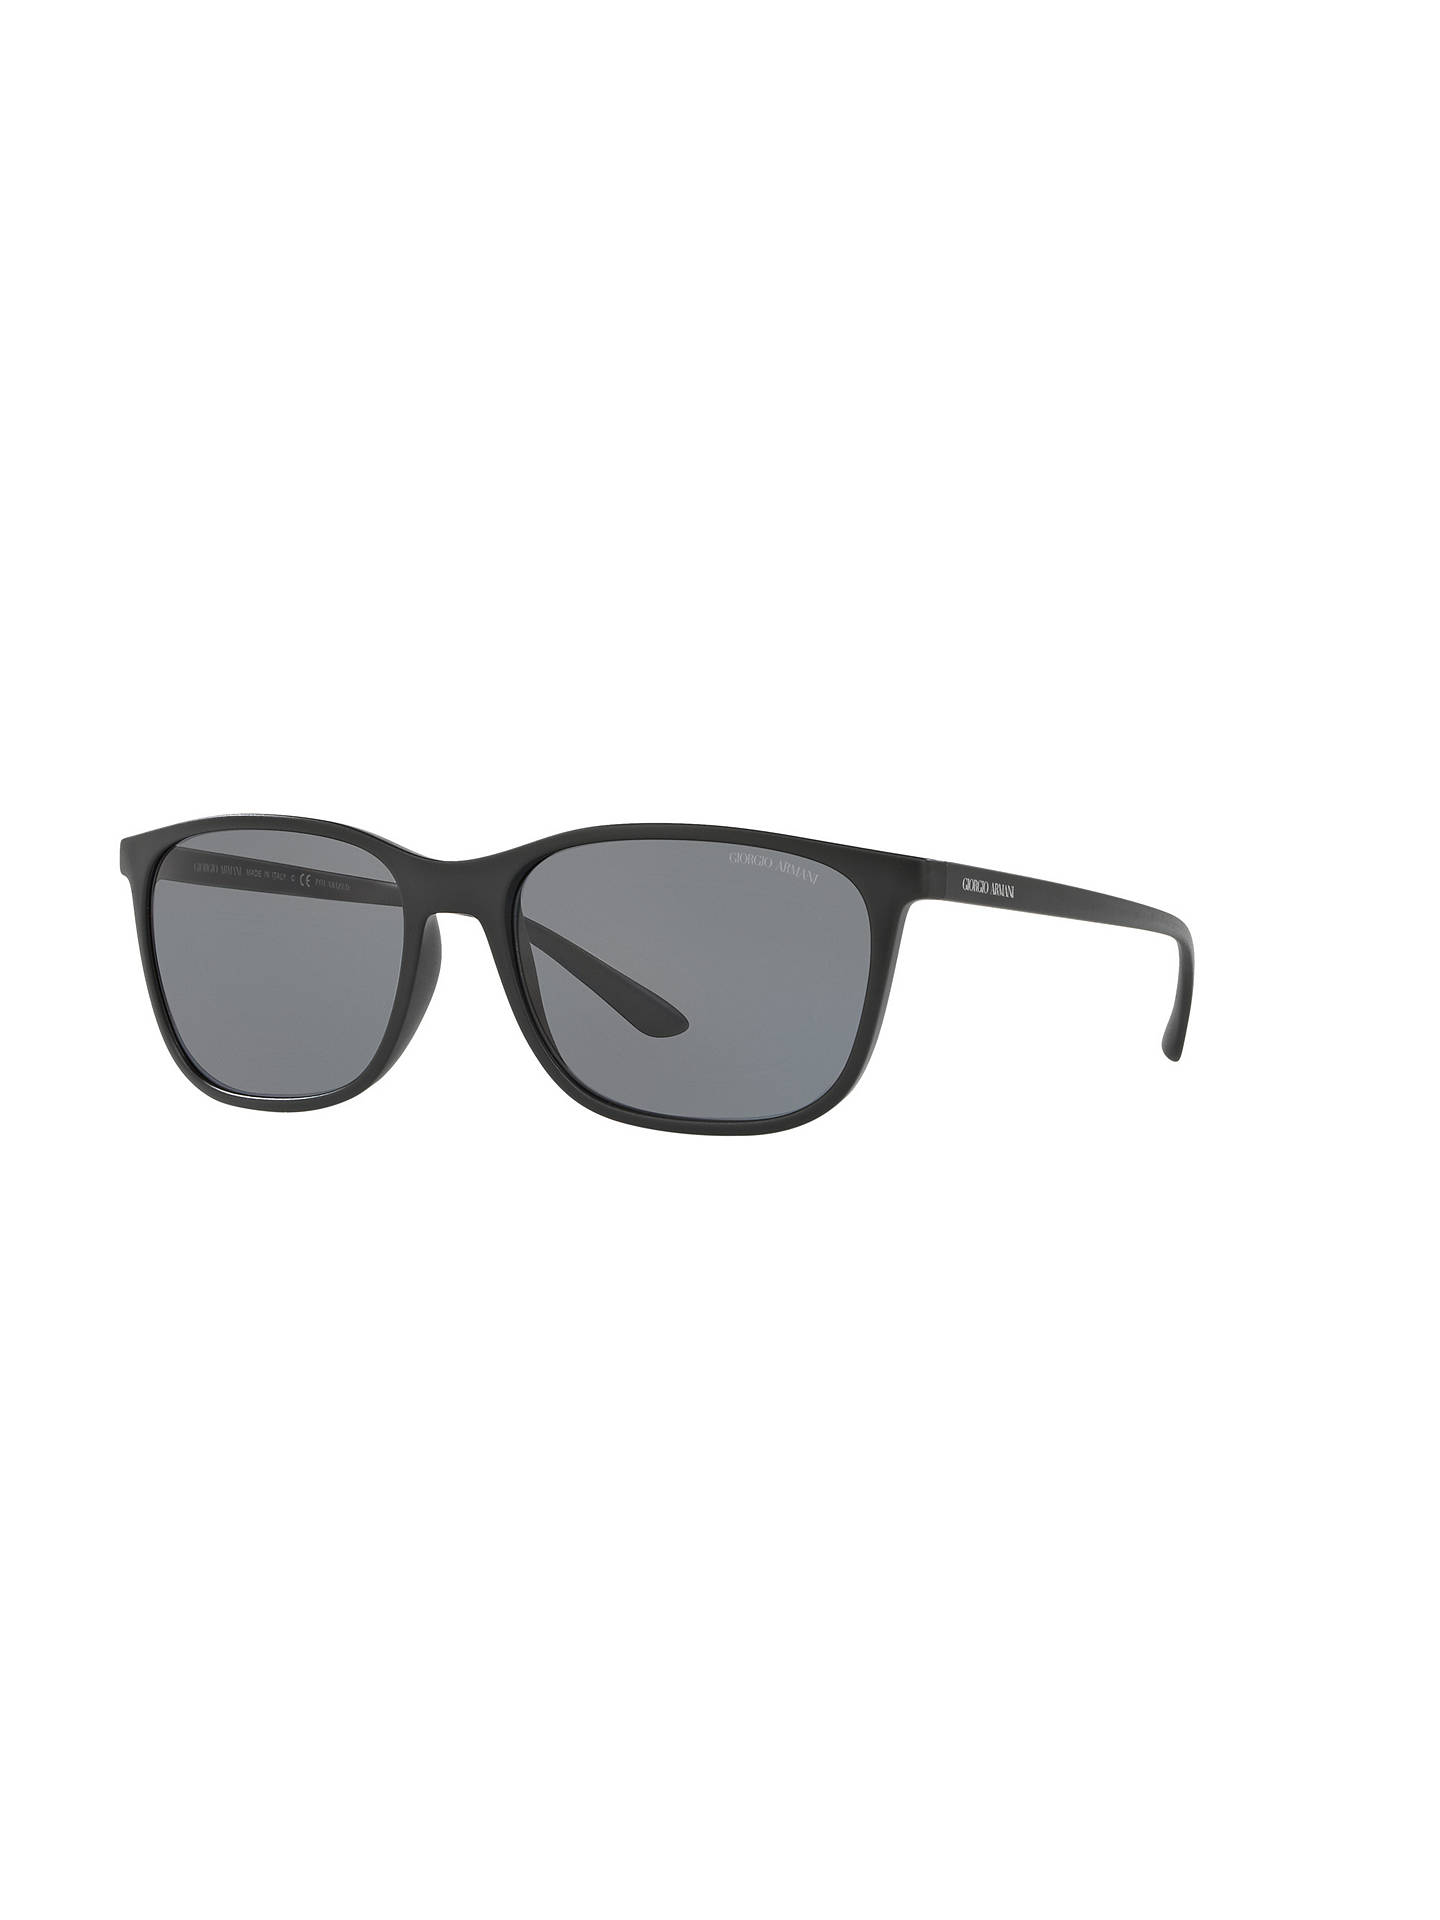 c929bbe10f55 Giorgio Armani AR8084 Polarised Square Sunglasses at John Lewis ...